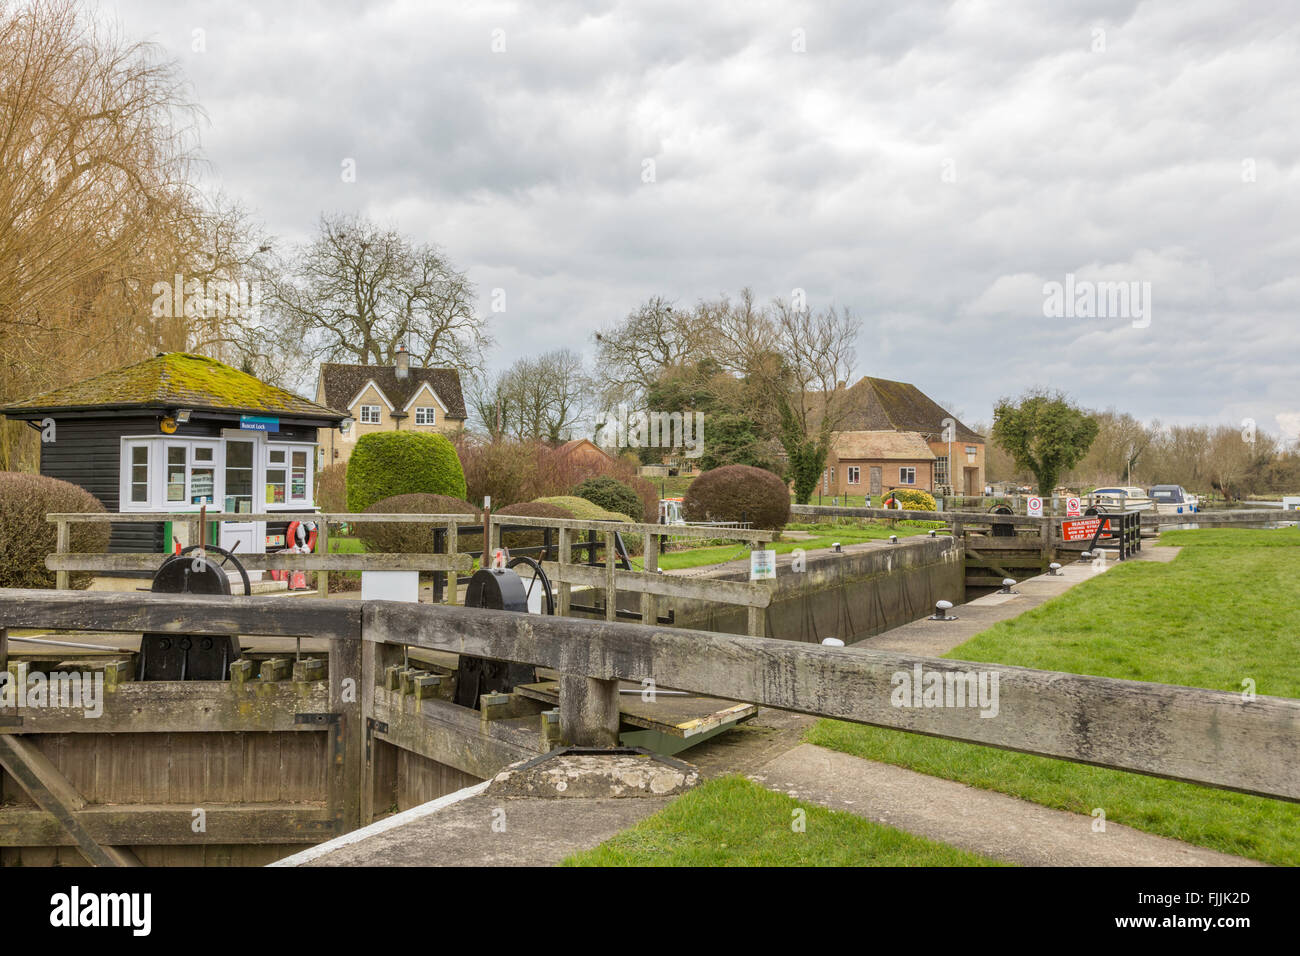 Buscot Lock and weir on the River Thames, Oxfordshire, England, UK Stock Photo